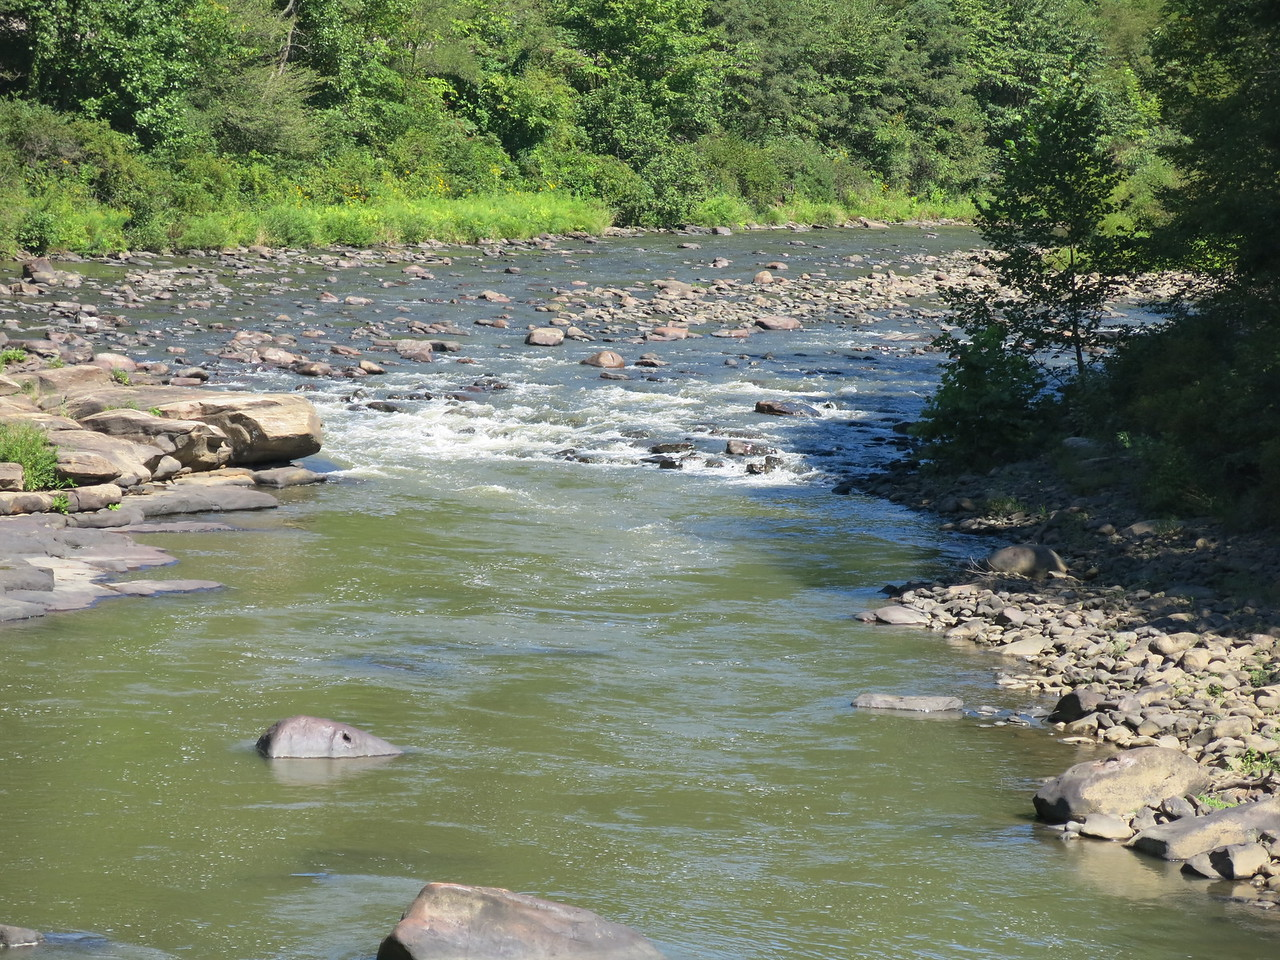 Close-up view of some rapids in the Casselman